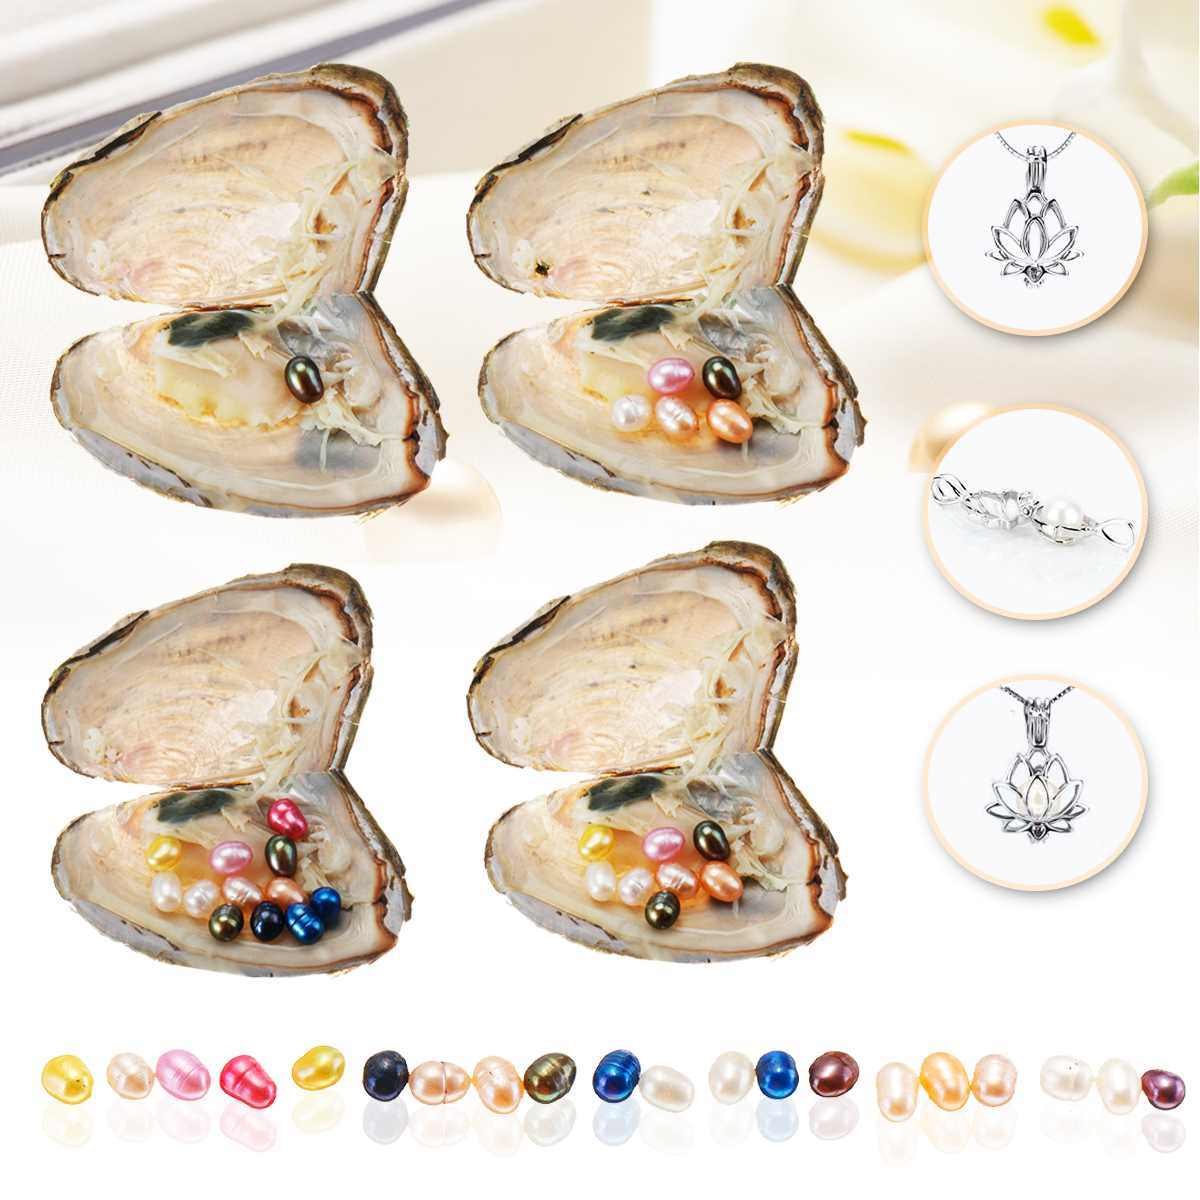 Natural Pearl Freshwater Cultured Pearl Oyster Multi-Color Rice Bead Oval Wishes Pearl Oyster DIY Birthday Gifts Mussel Fashion